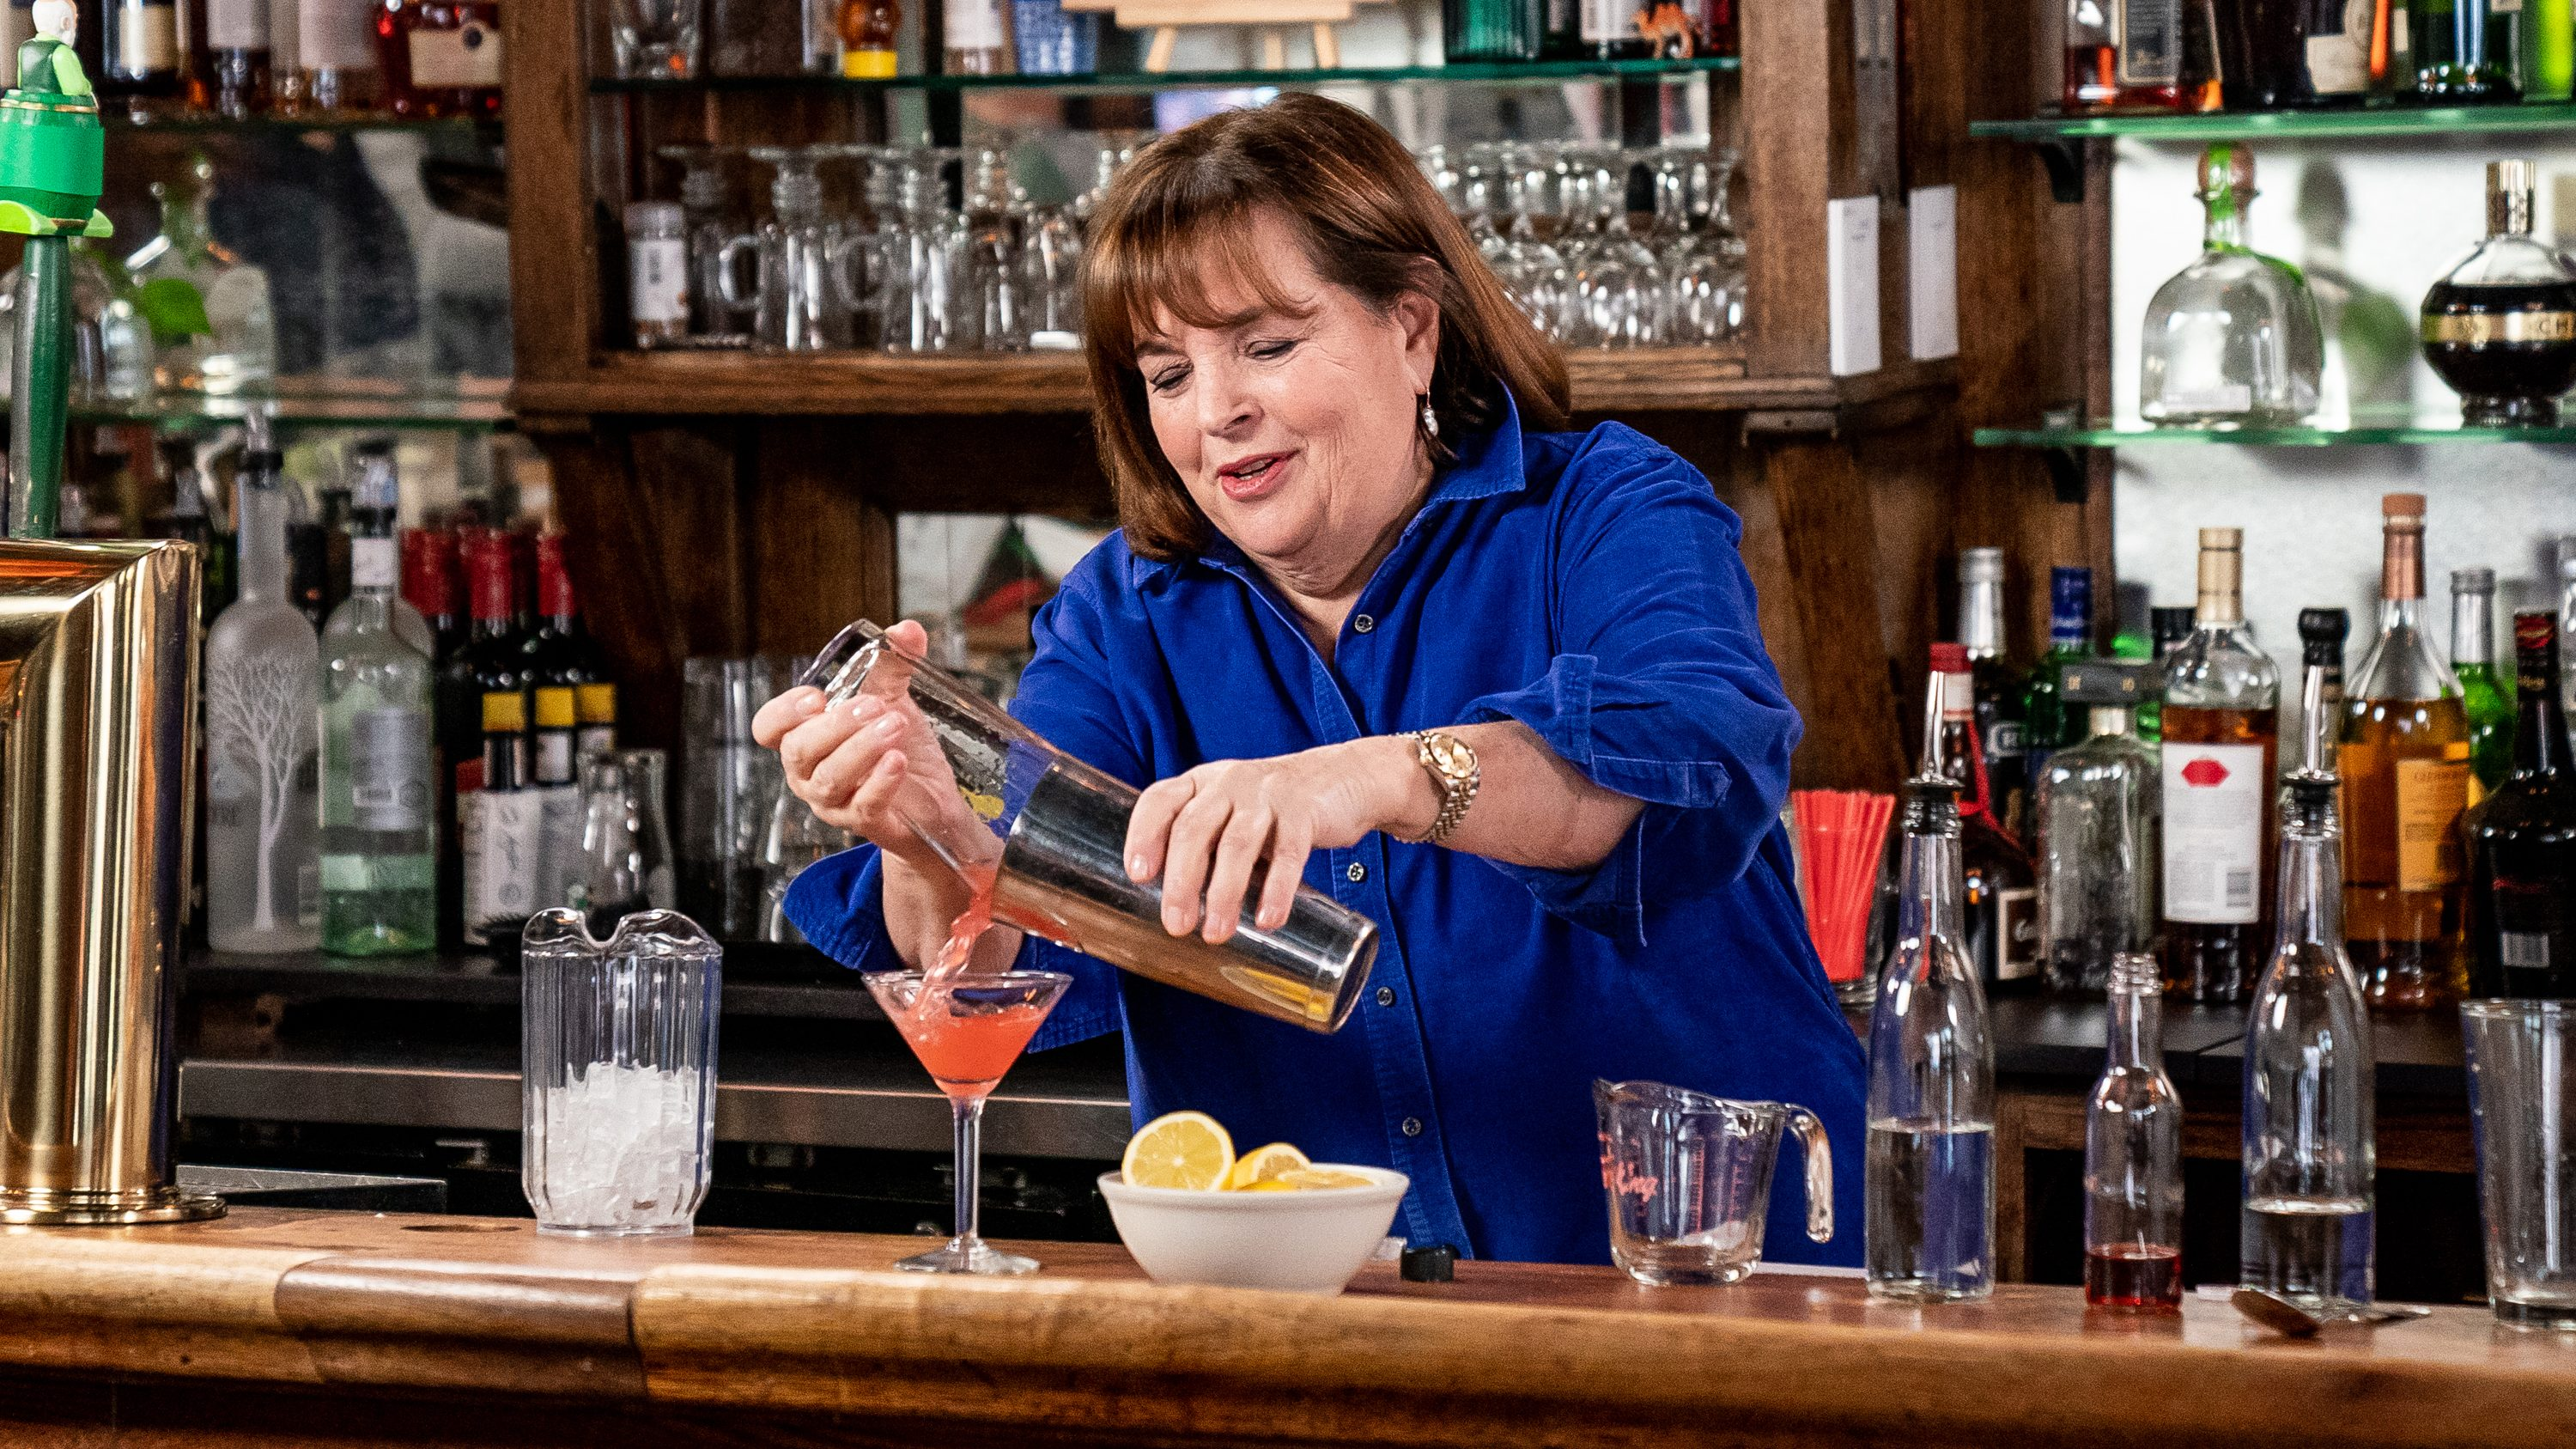 5 Things You Didn't Know About Me: Ina Garten, the 'Barefoot Contessa' Host